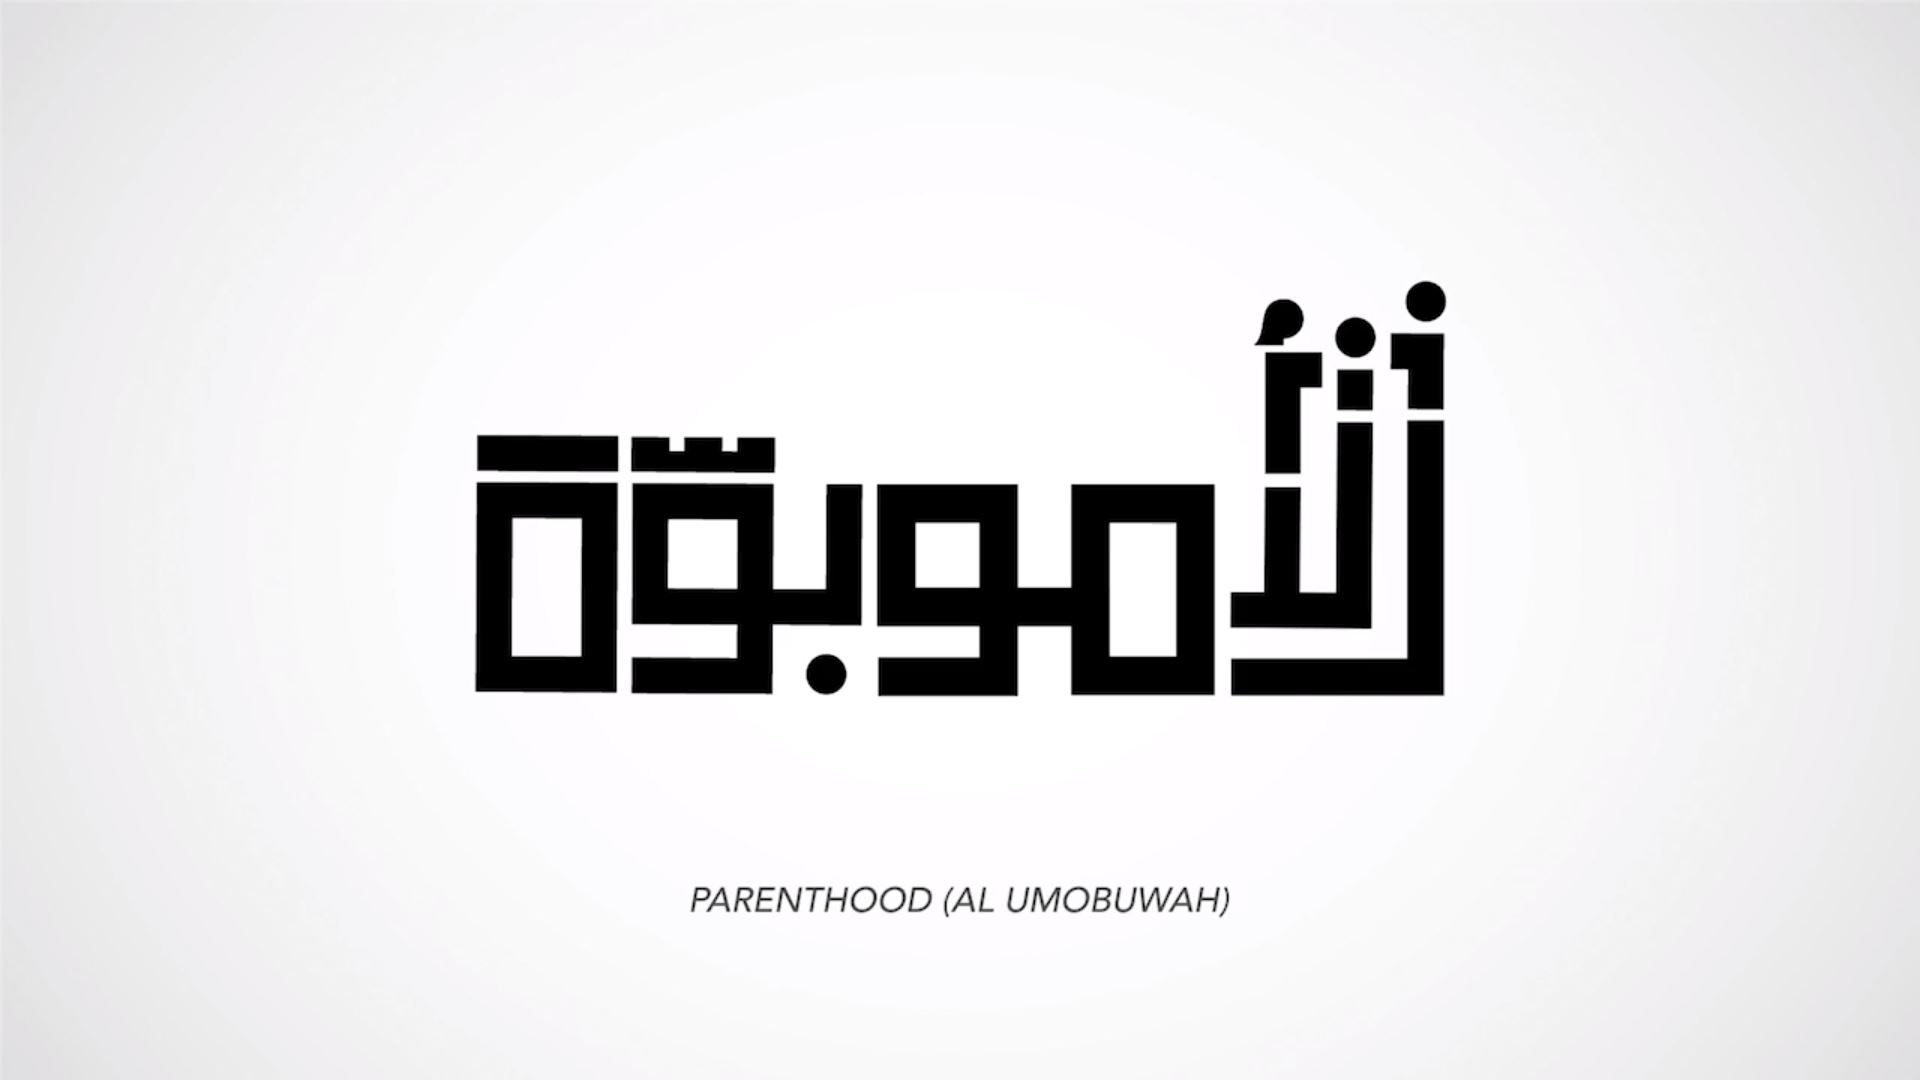 Arabic: Parenthood